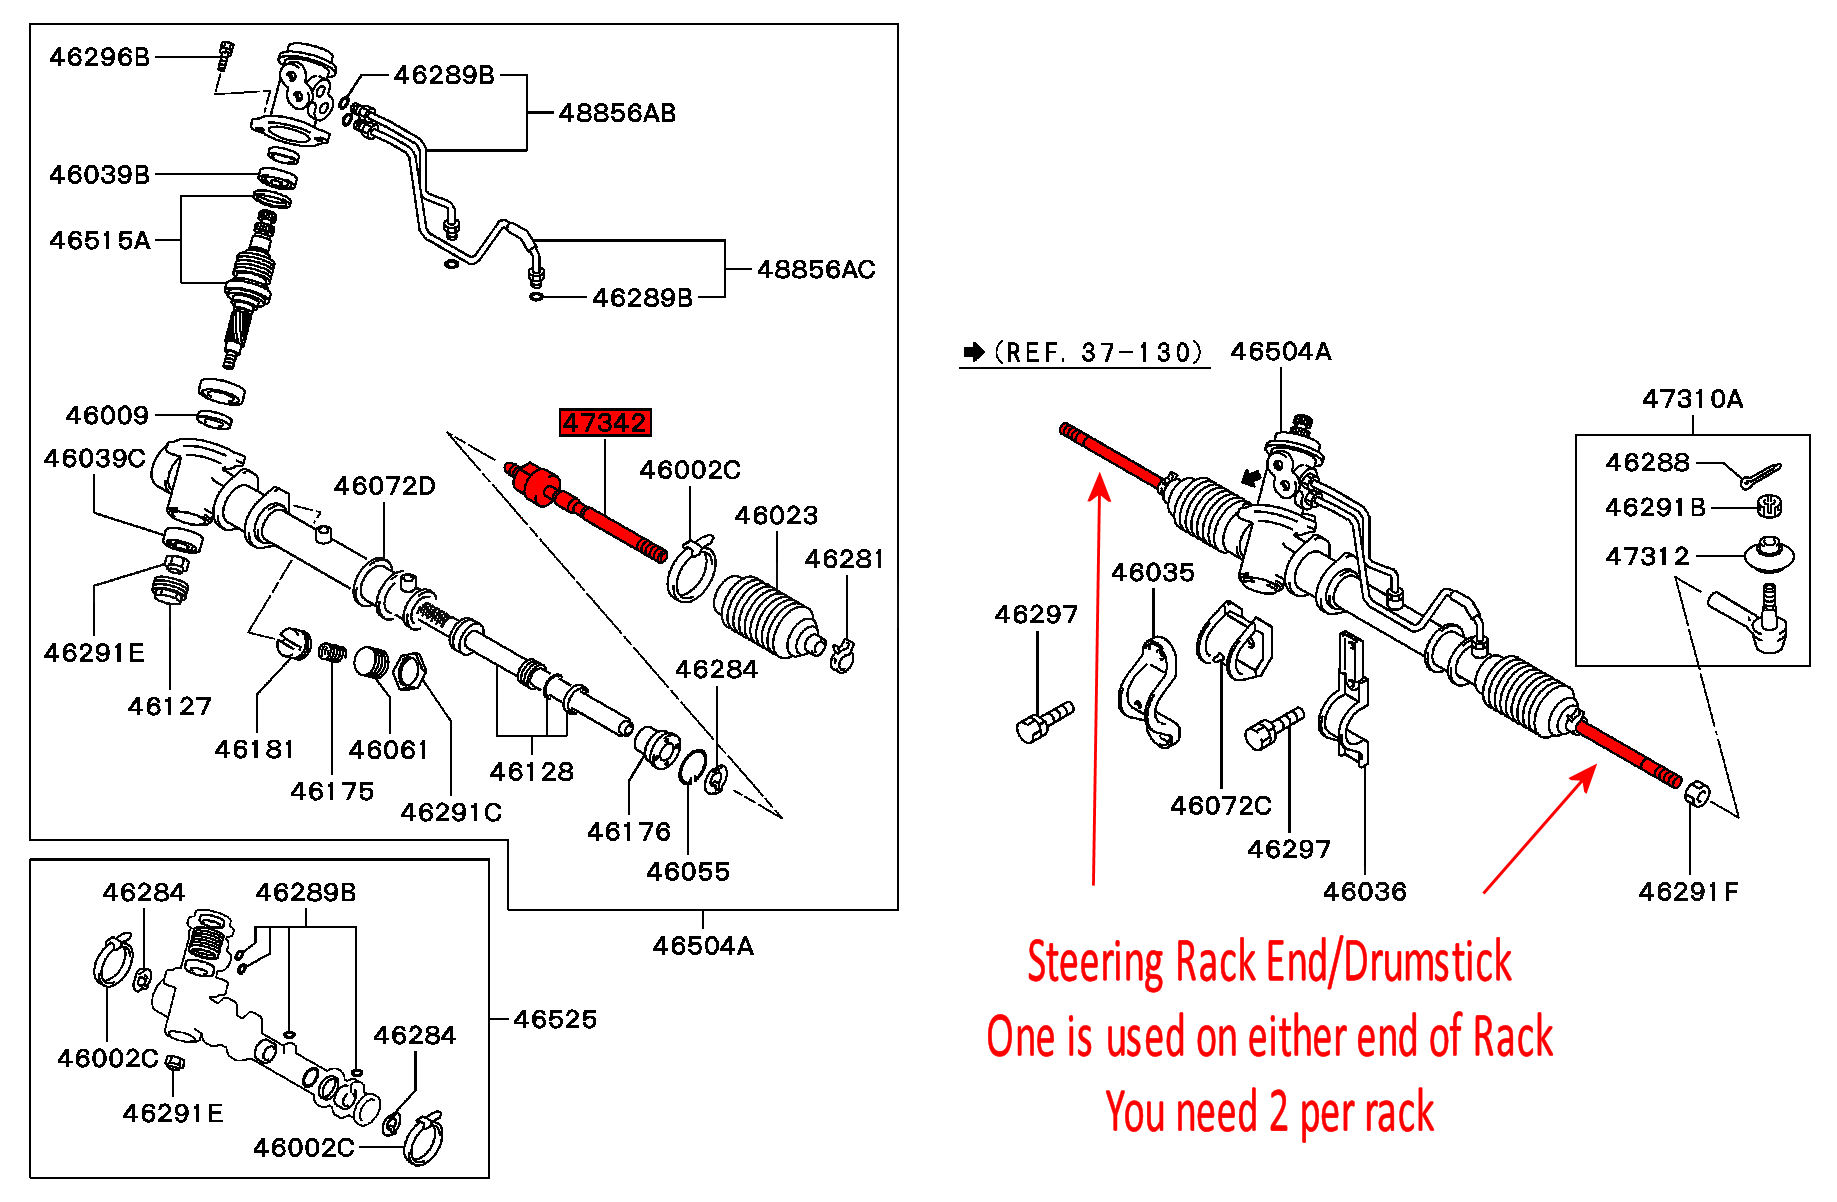 vauxhall vivaro central locking wiring diagram